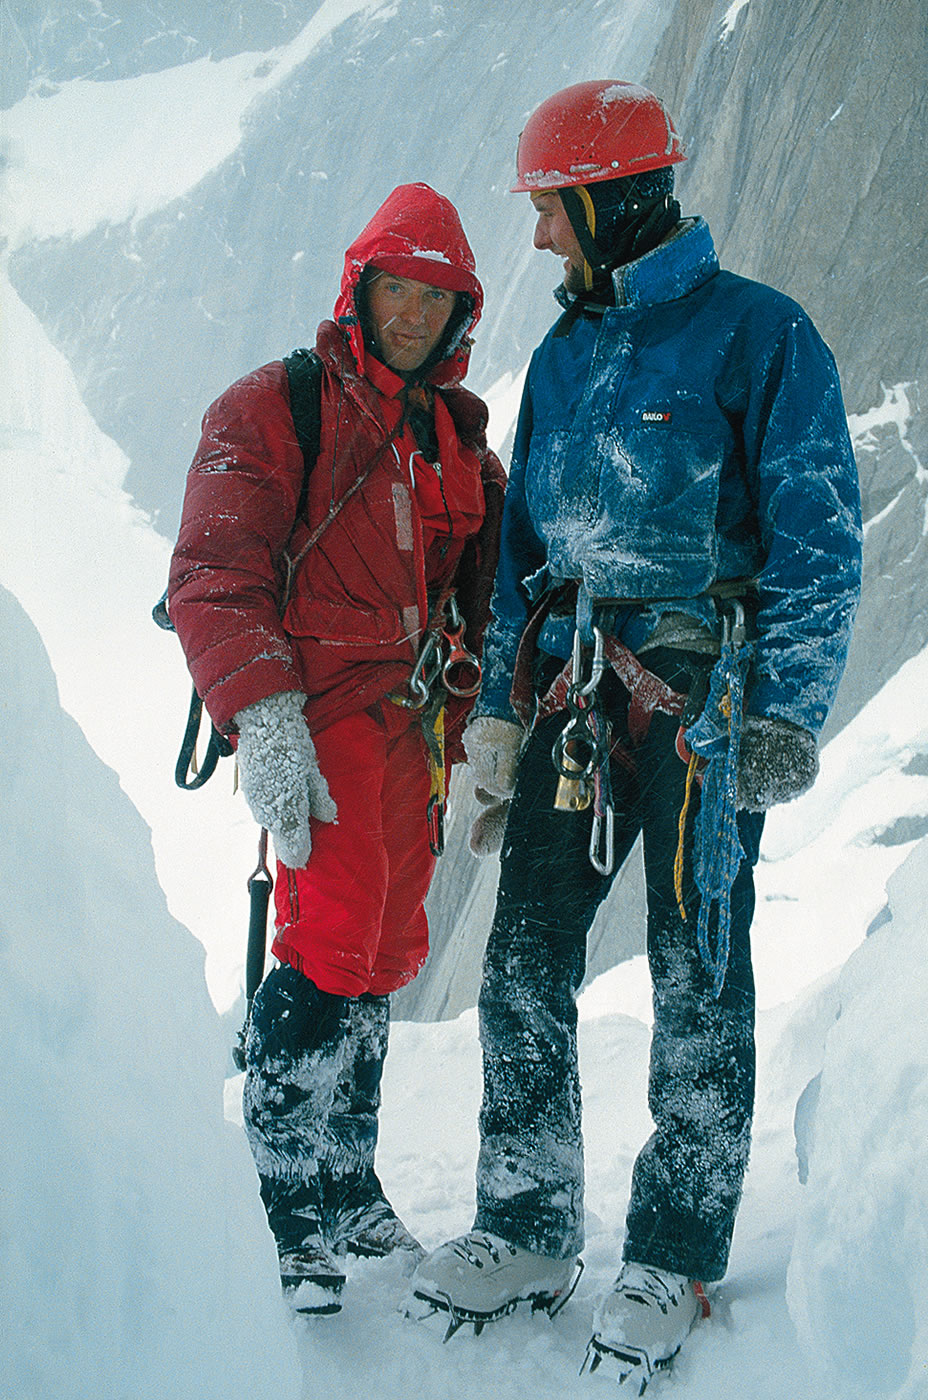 Knez and Jegli on Torre Egger (2850m), 1986, the year that they completed the first ascent of Psycho Vertical (5.11b A3 90 degrees, 900m) on the peak's south face, in a 22-hour round-trip push to the summit after fixing the first 550 meters. [Photo] Silvo Karo